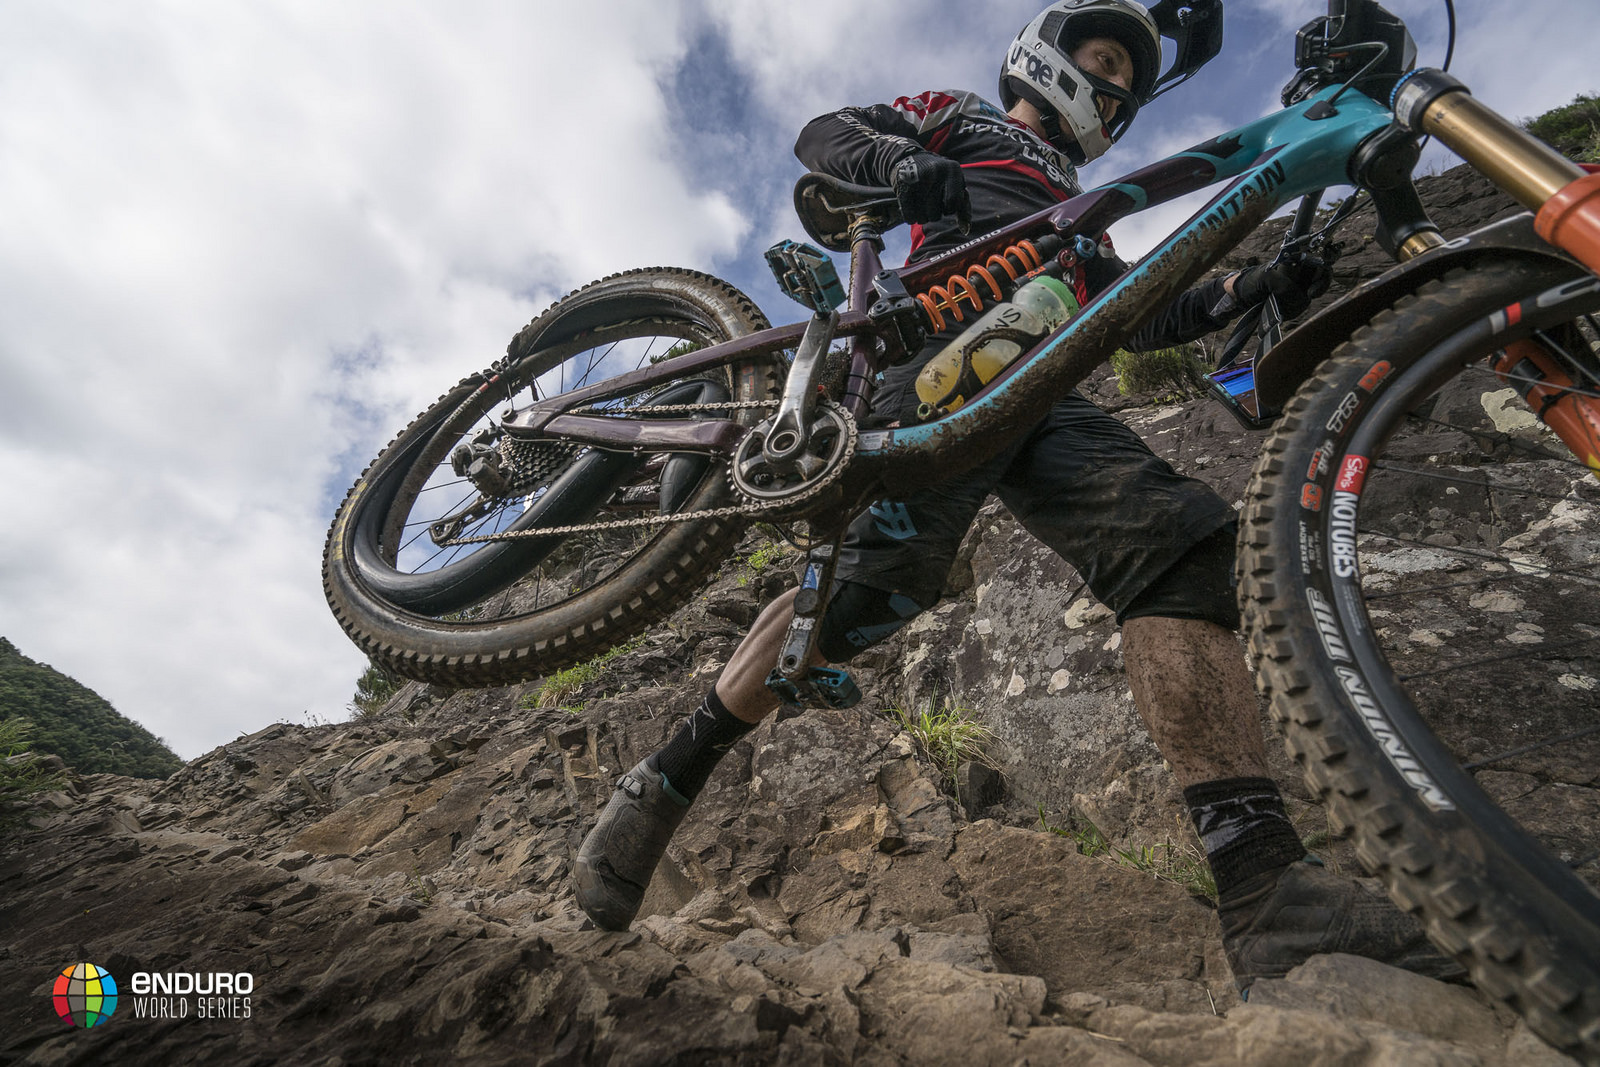 Melamed's lead vanished on day 2. That's Photo courtesy Enduro World Series